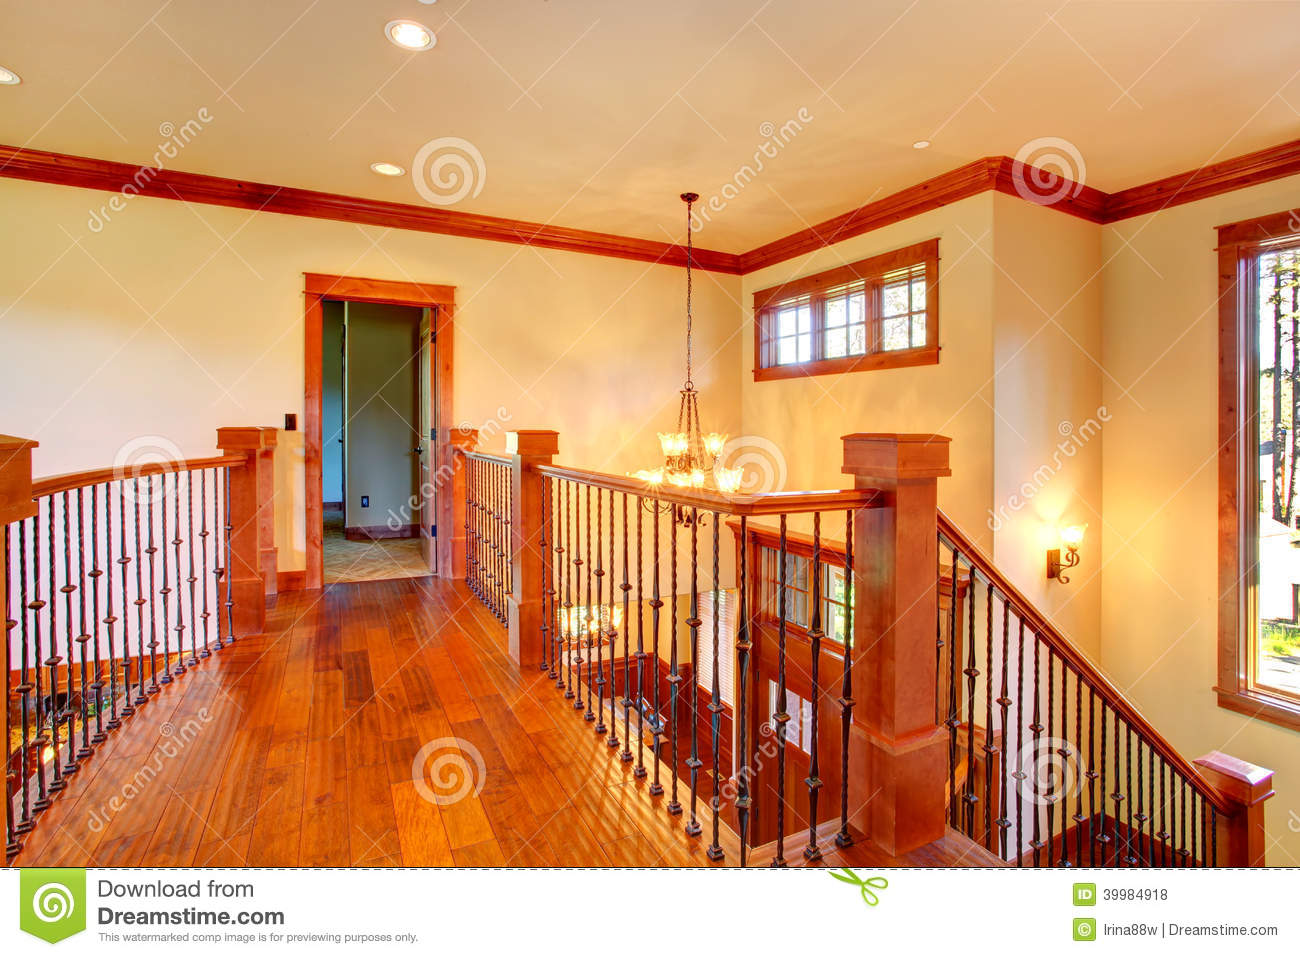 Lof balcony luxury house interior stock photo image for Luxury balcony design